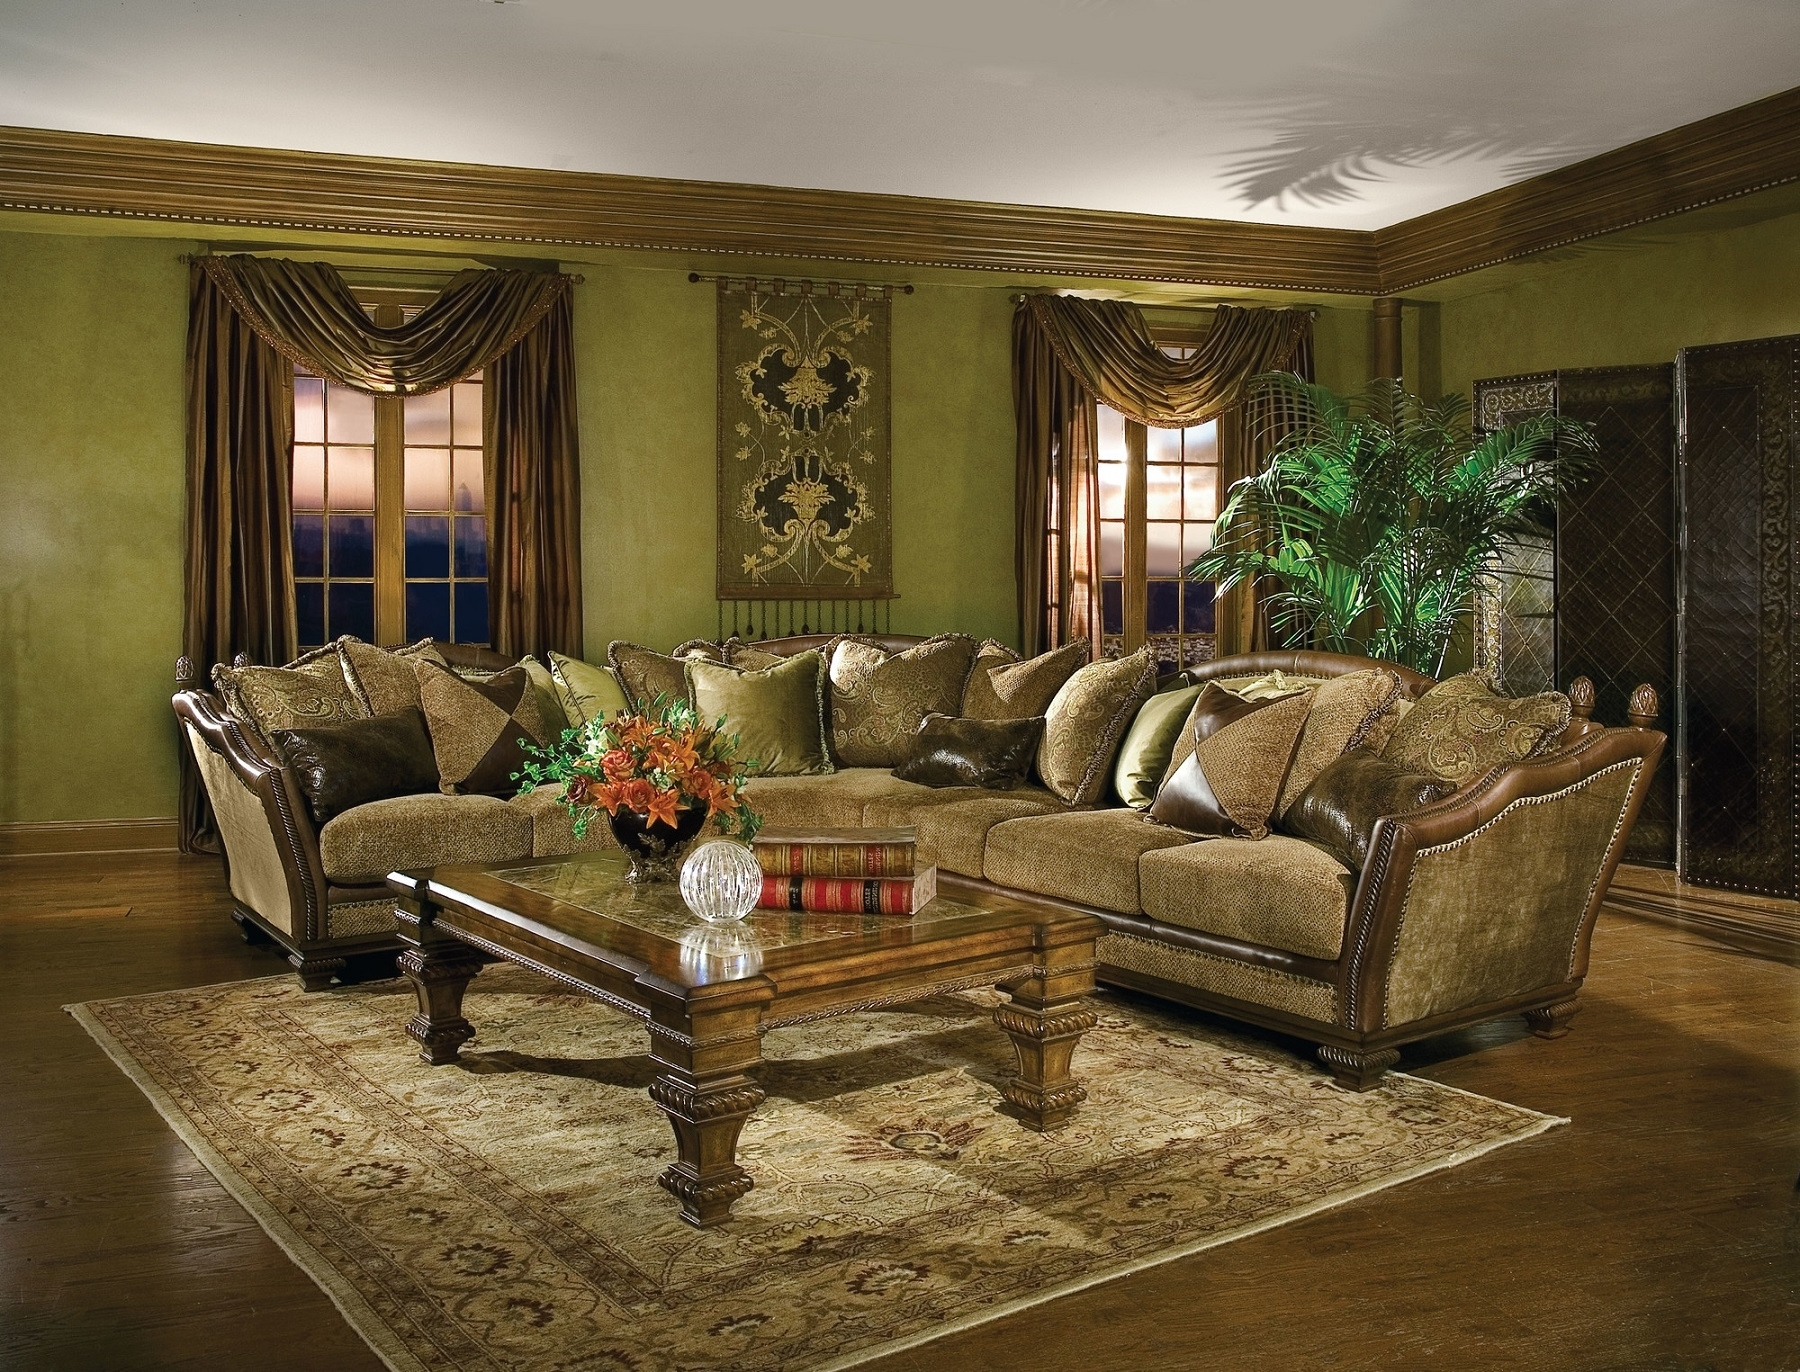 Amazing Luxury Sectional Sofas 84 About Remodel Modern Sofa Inside Widely Used High End Sectional Sofas (View 4 of 20)